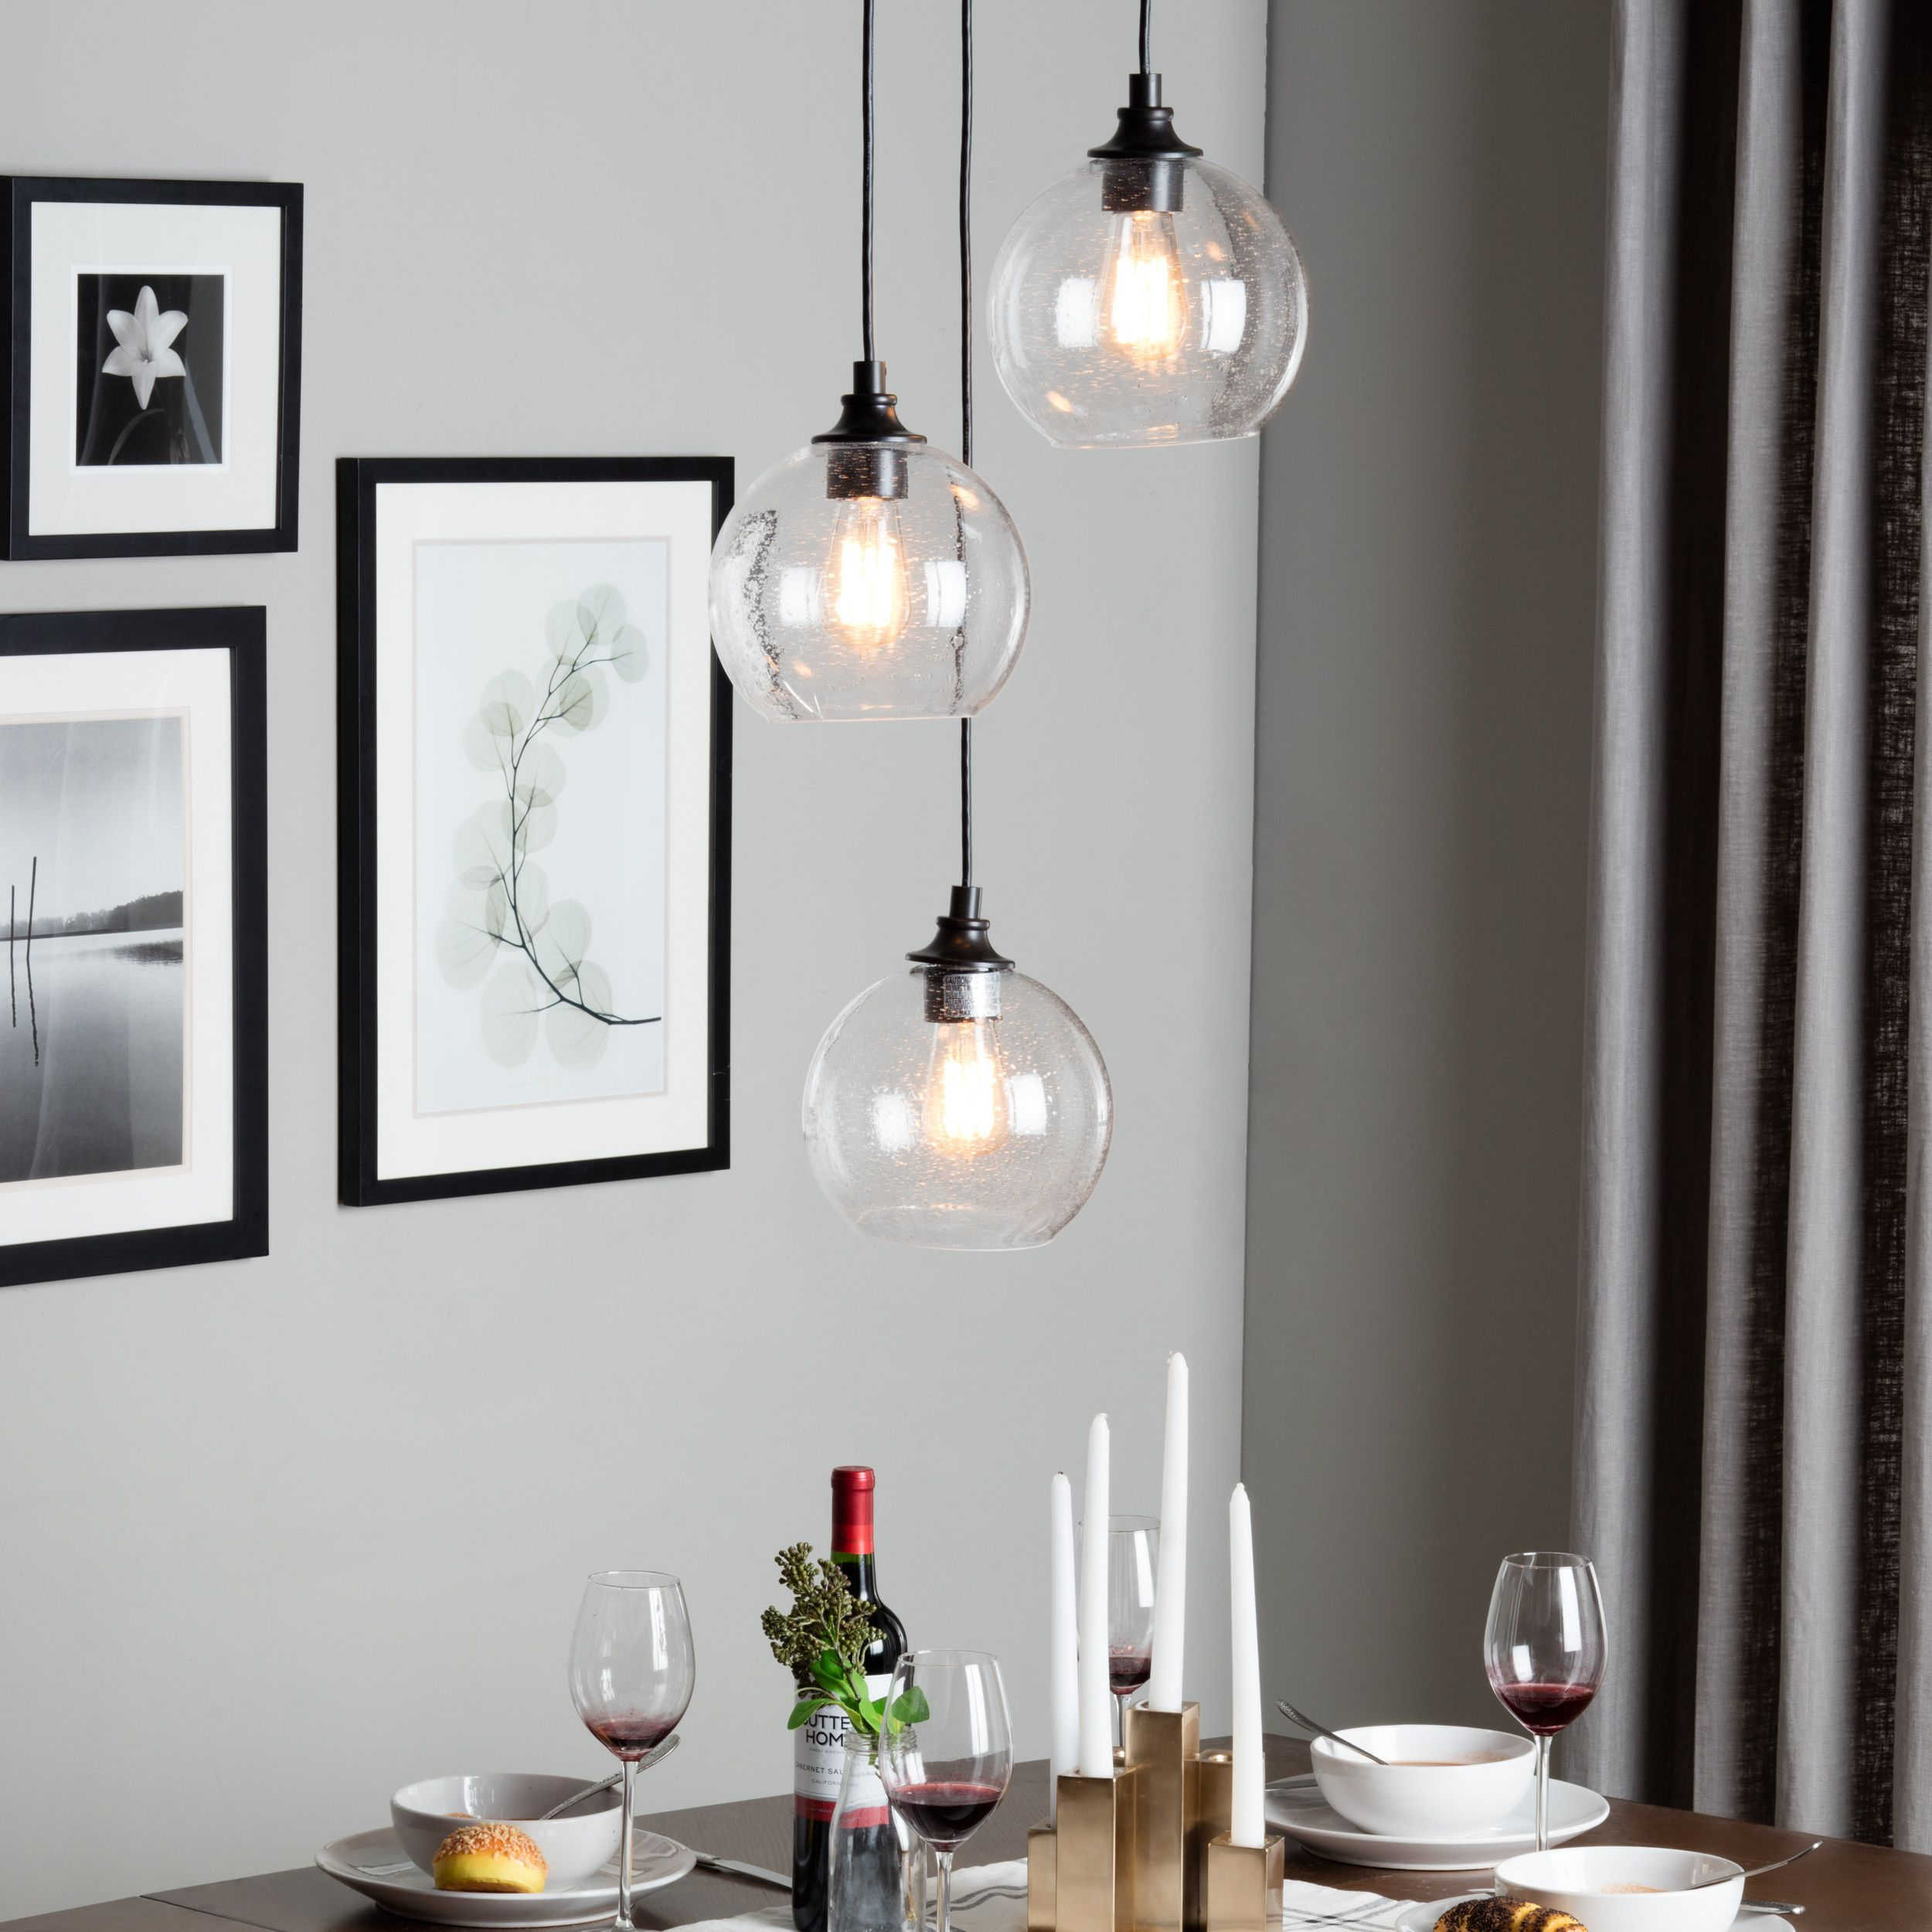 Pendant Lighting For Dining Room Suspended From The